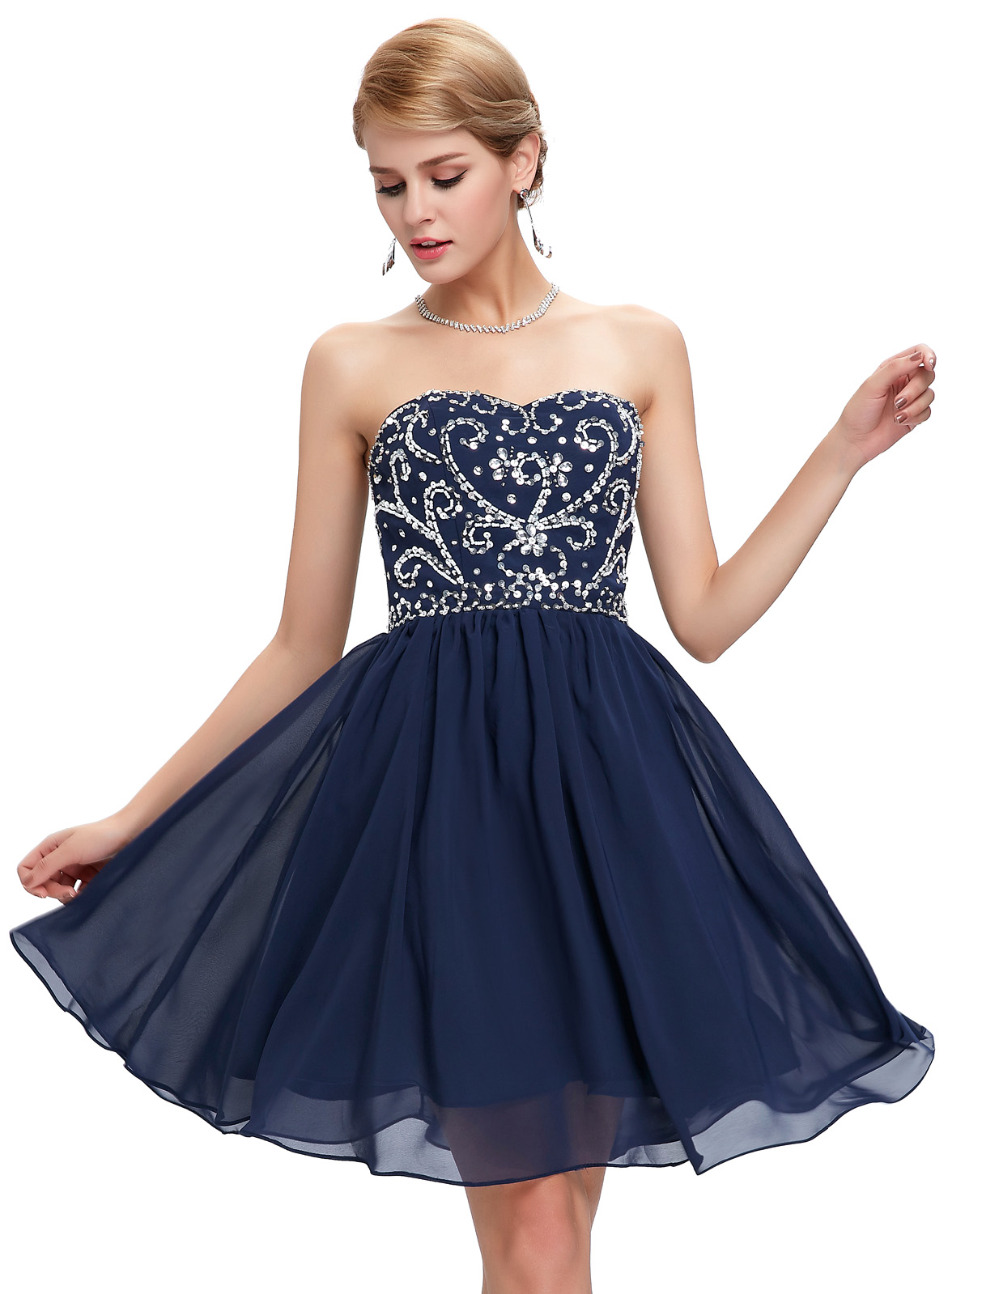 Aliexpress.com : Buy Black Blue Green Navy Blue Prom Dresses Under ...